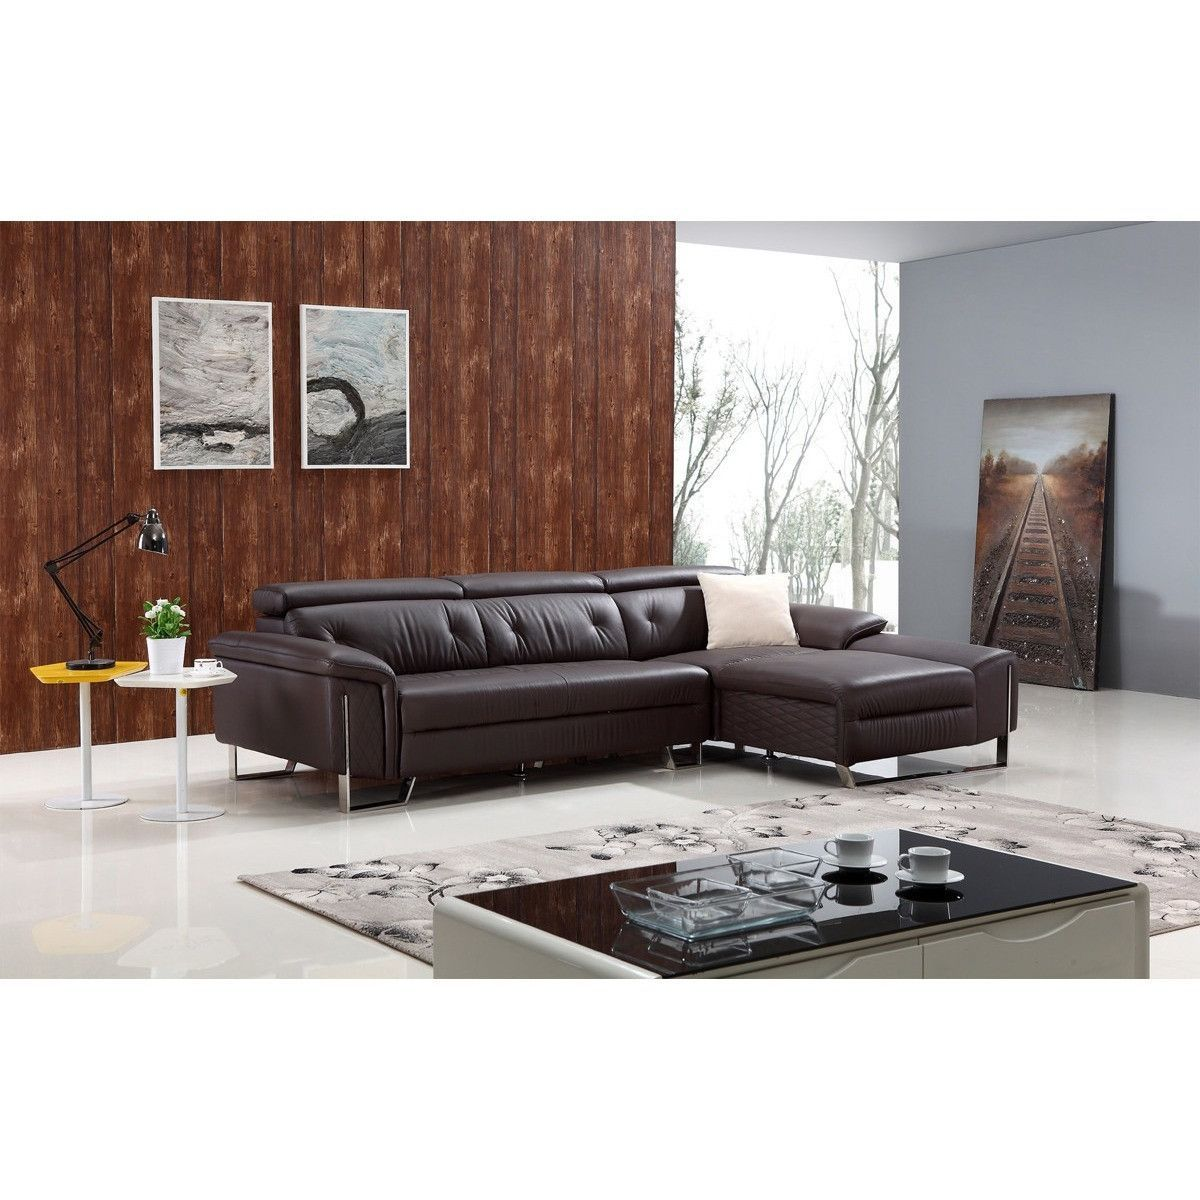 Divani casa t modern brown leather sectional sofa leather